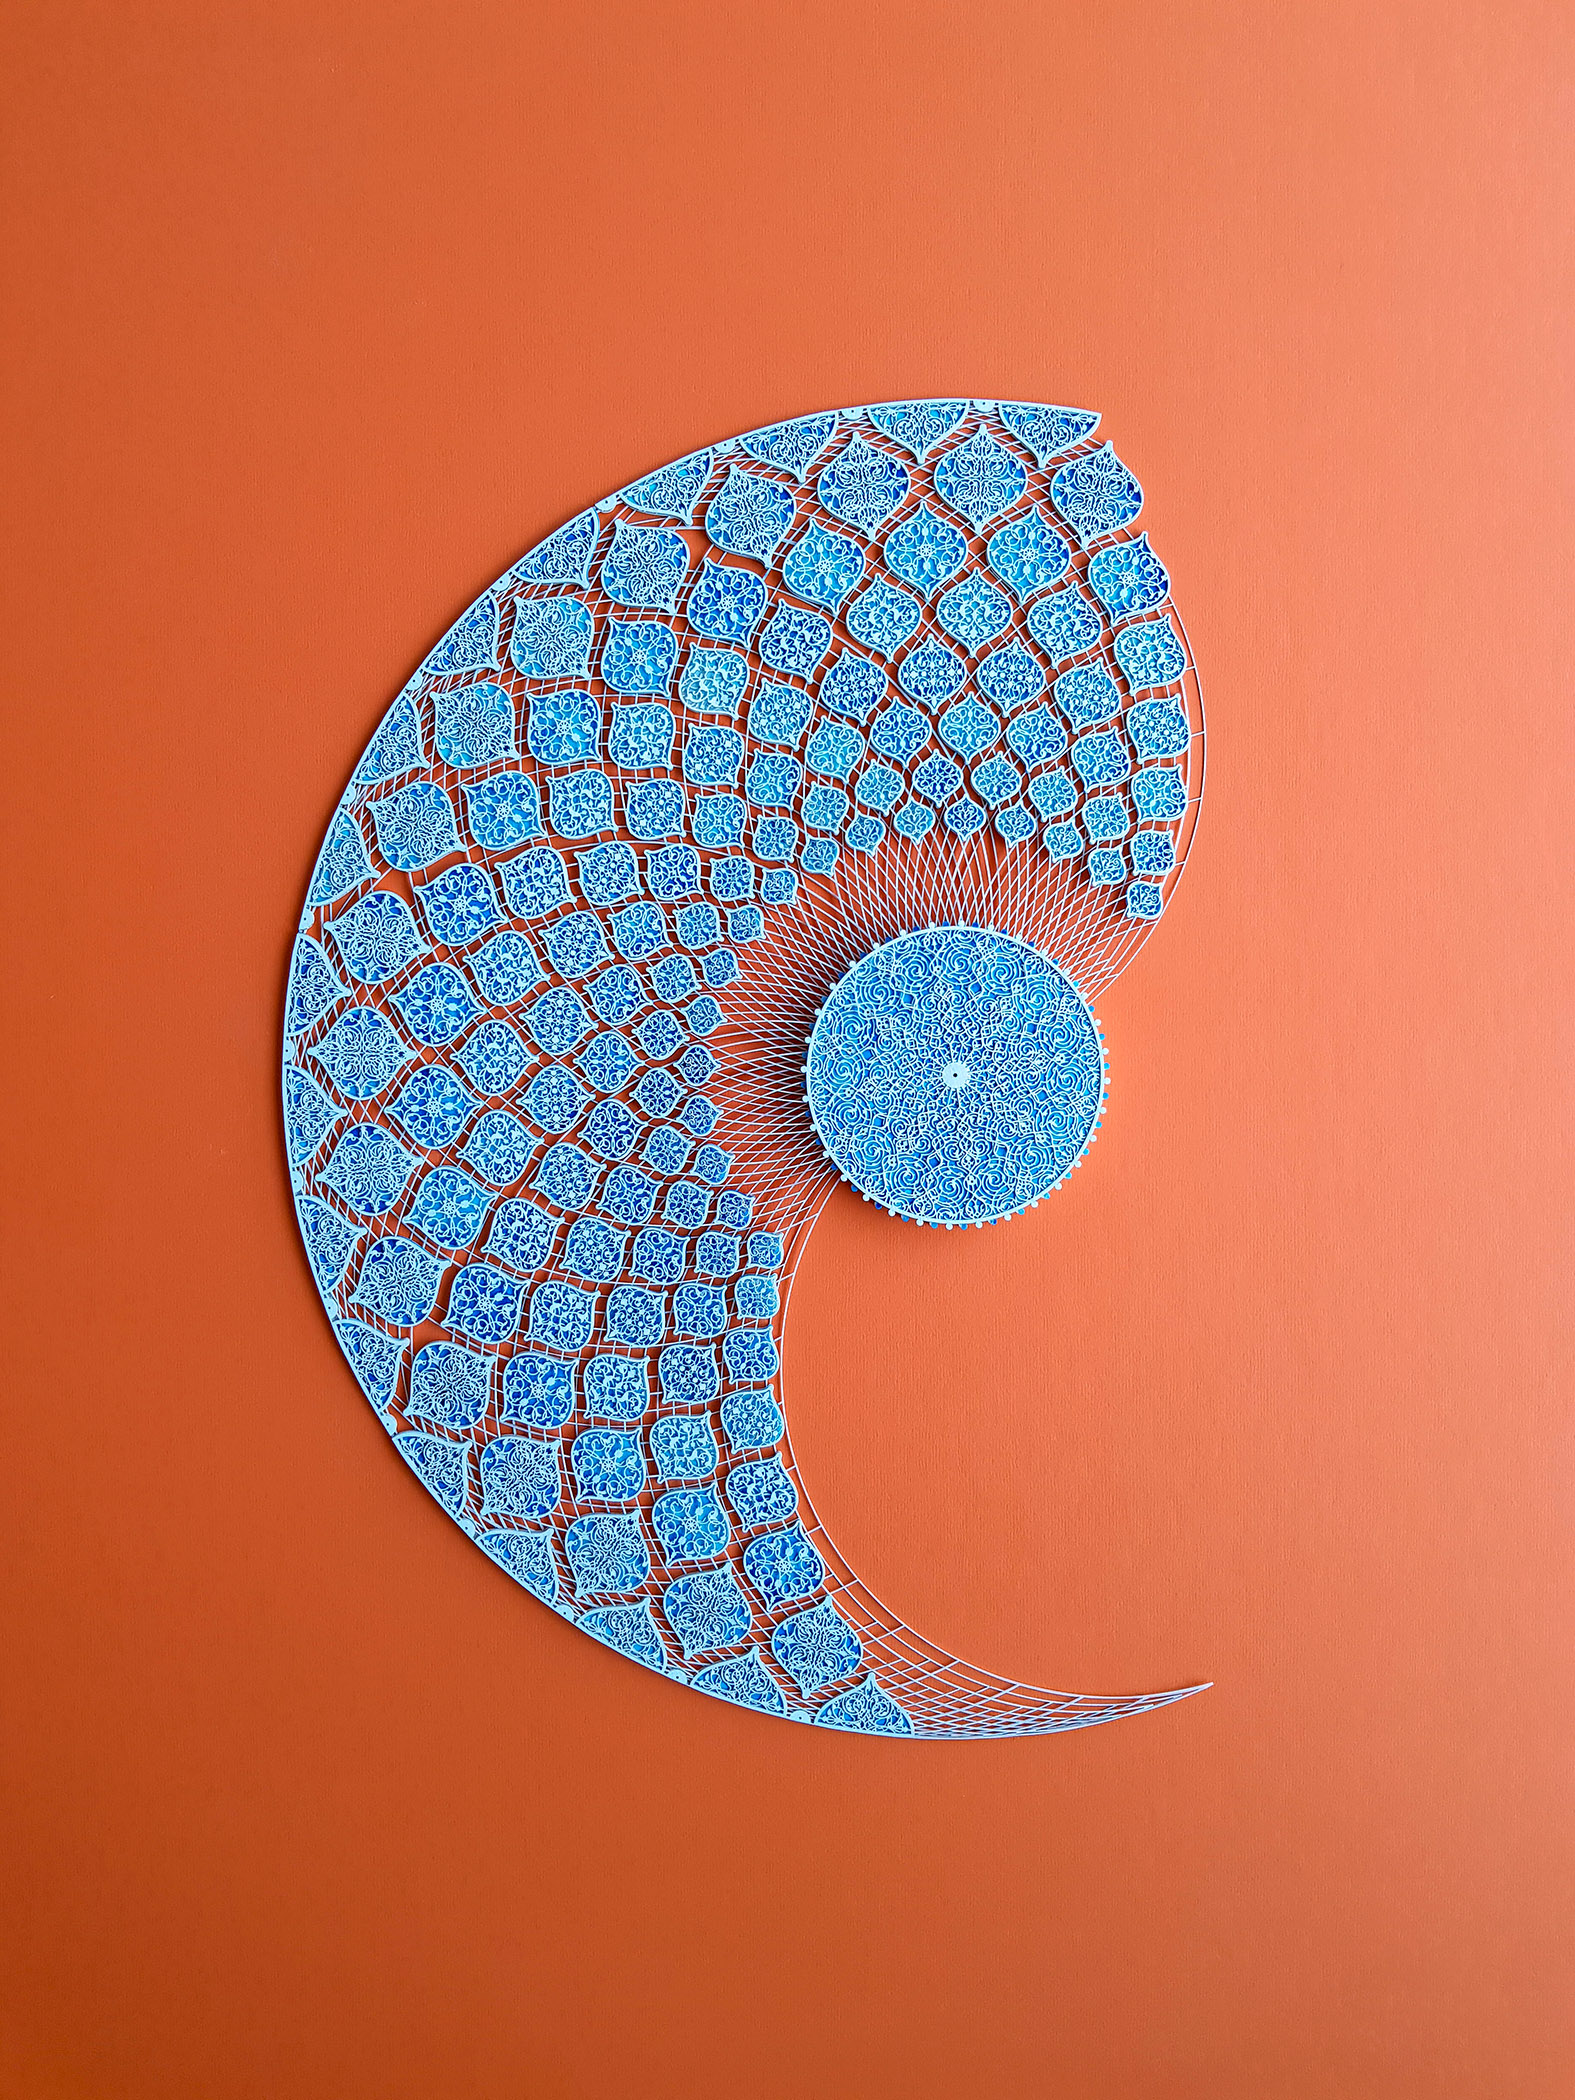 Julia Ibbini - Study No.1 for the Sublime Line - 85x100cm- Lasercut papers over Acrylic on Mylar - AED14,000.jpg